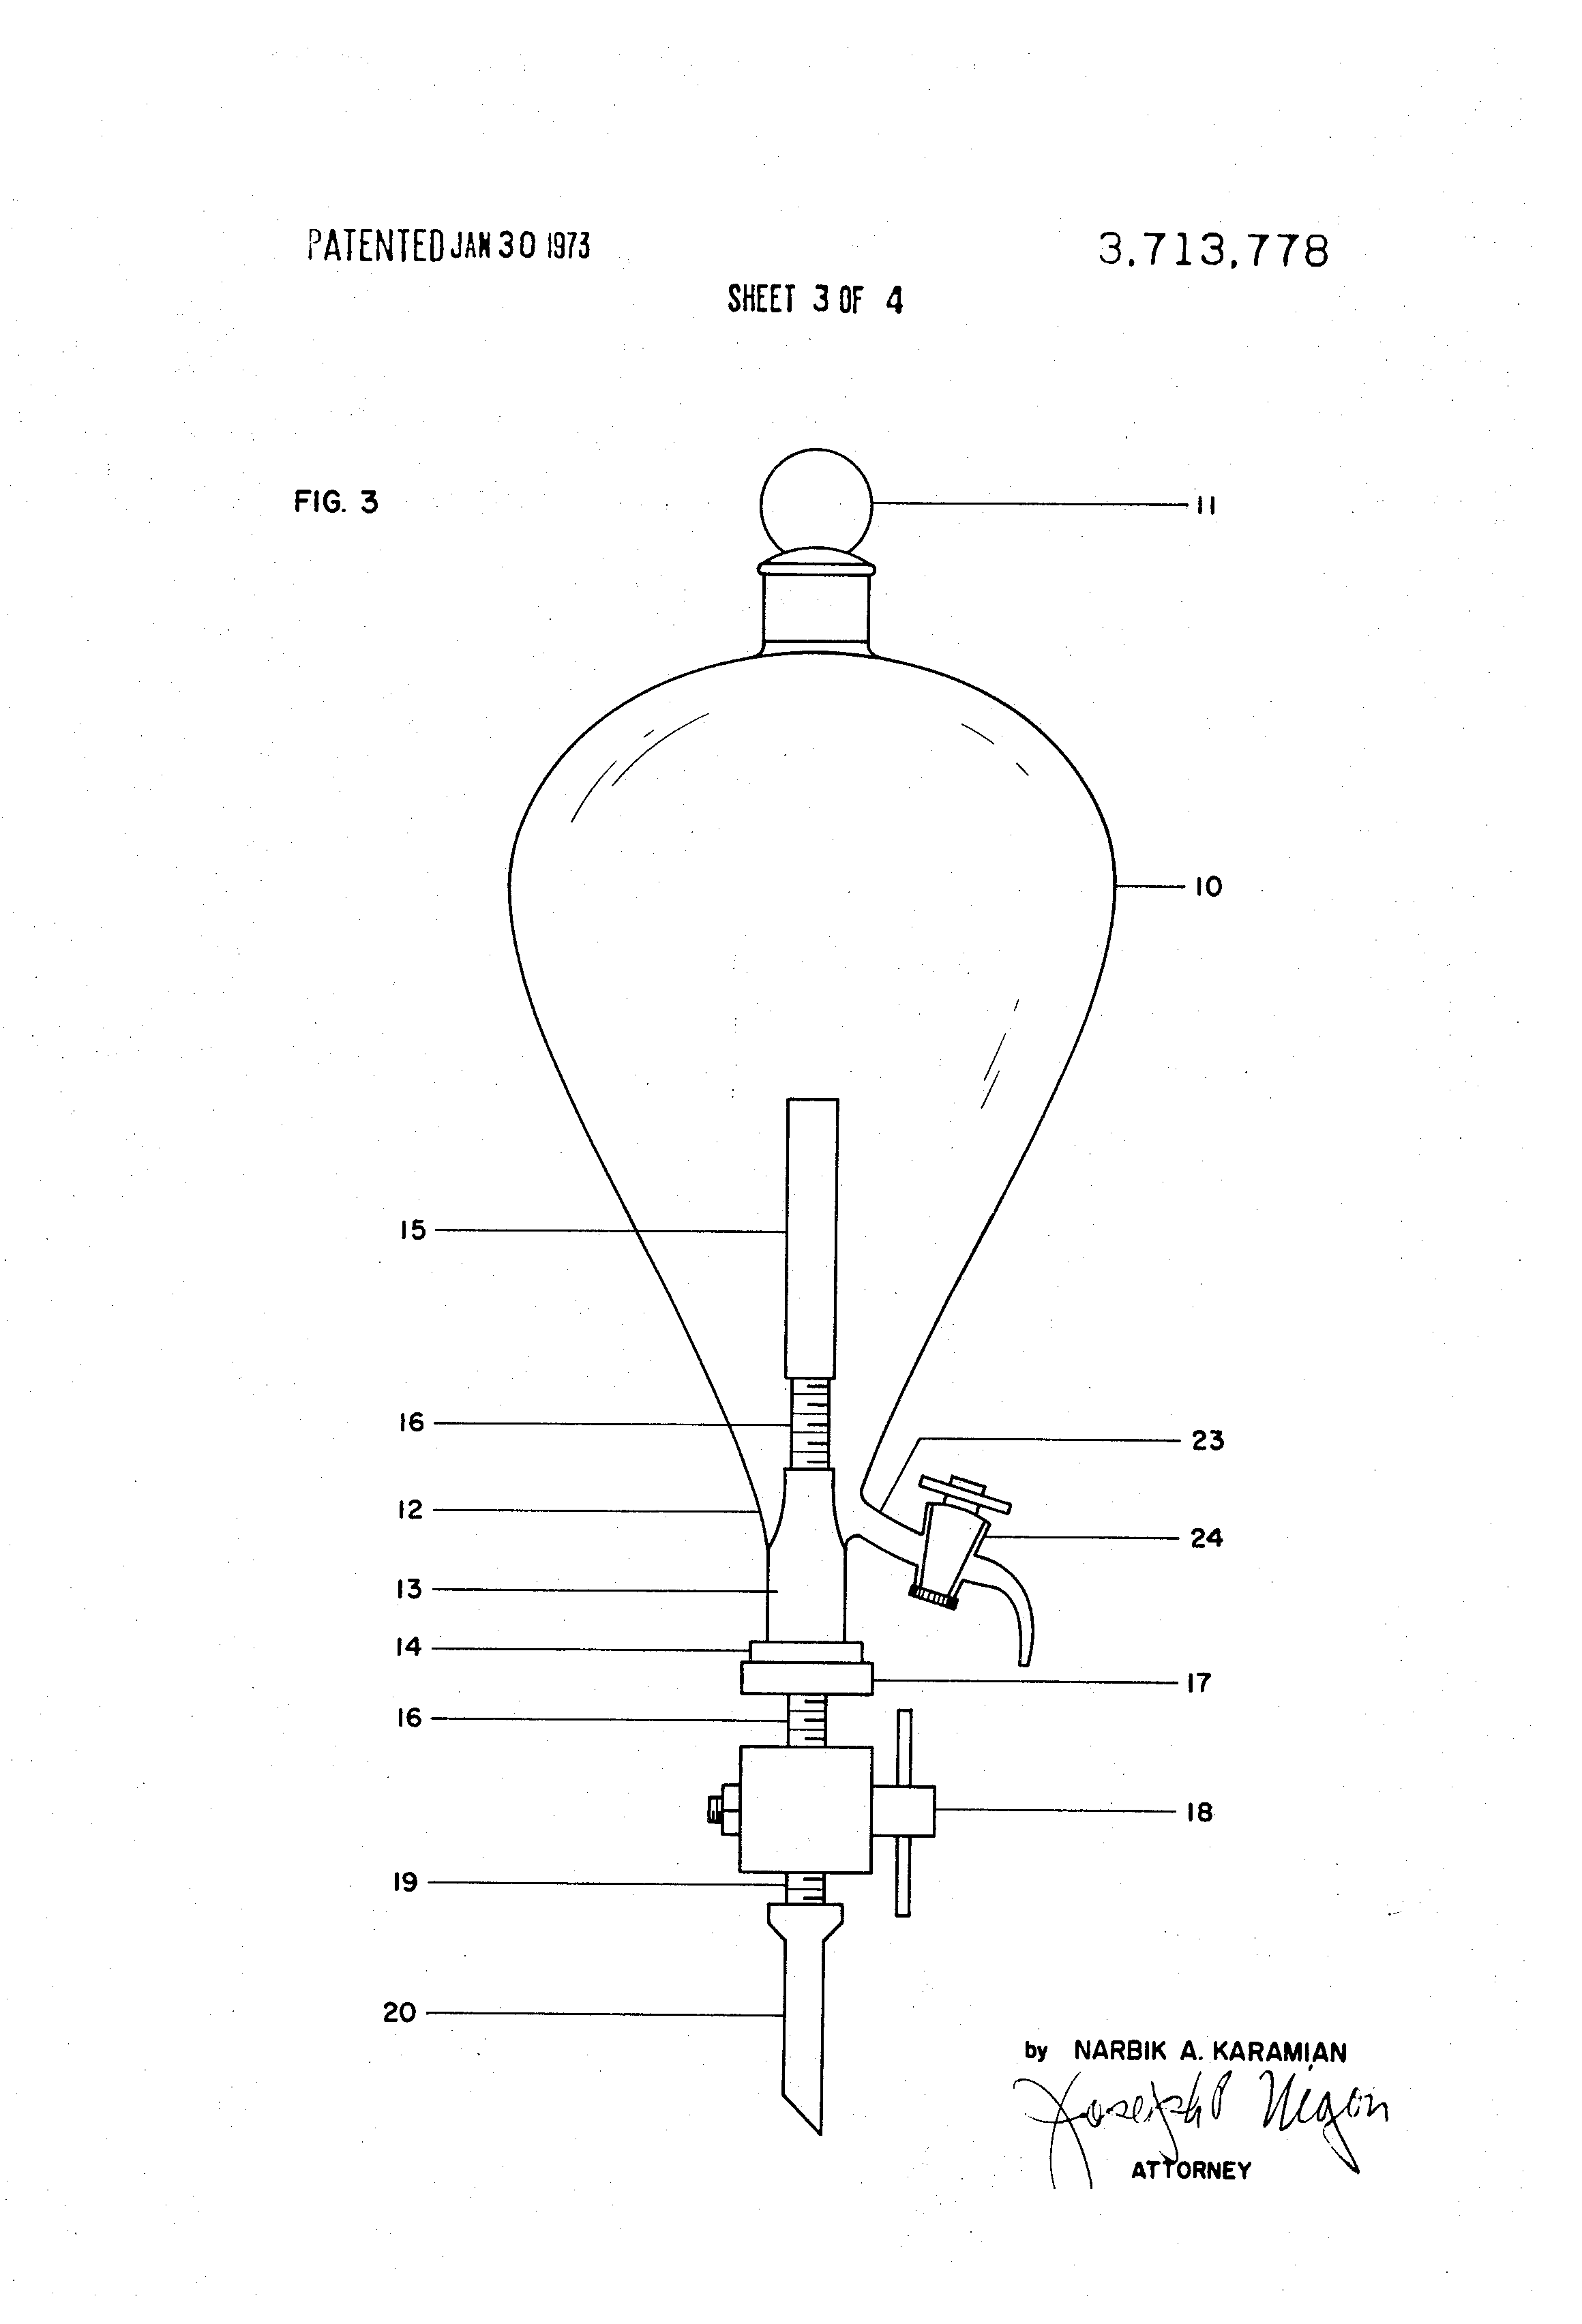 Separatory funnel diagram free download wiring diagram patent us3713778 separatory funnel google patents separatory funnel diagram 27 separatory funnel structure separatory flask pooptronica Images